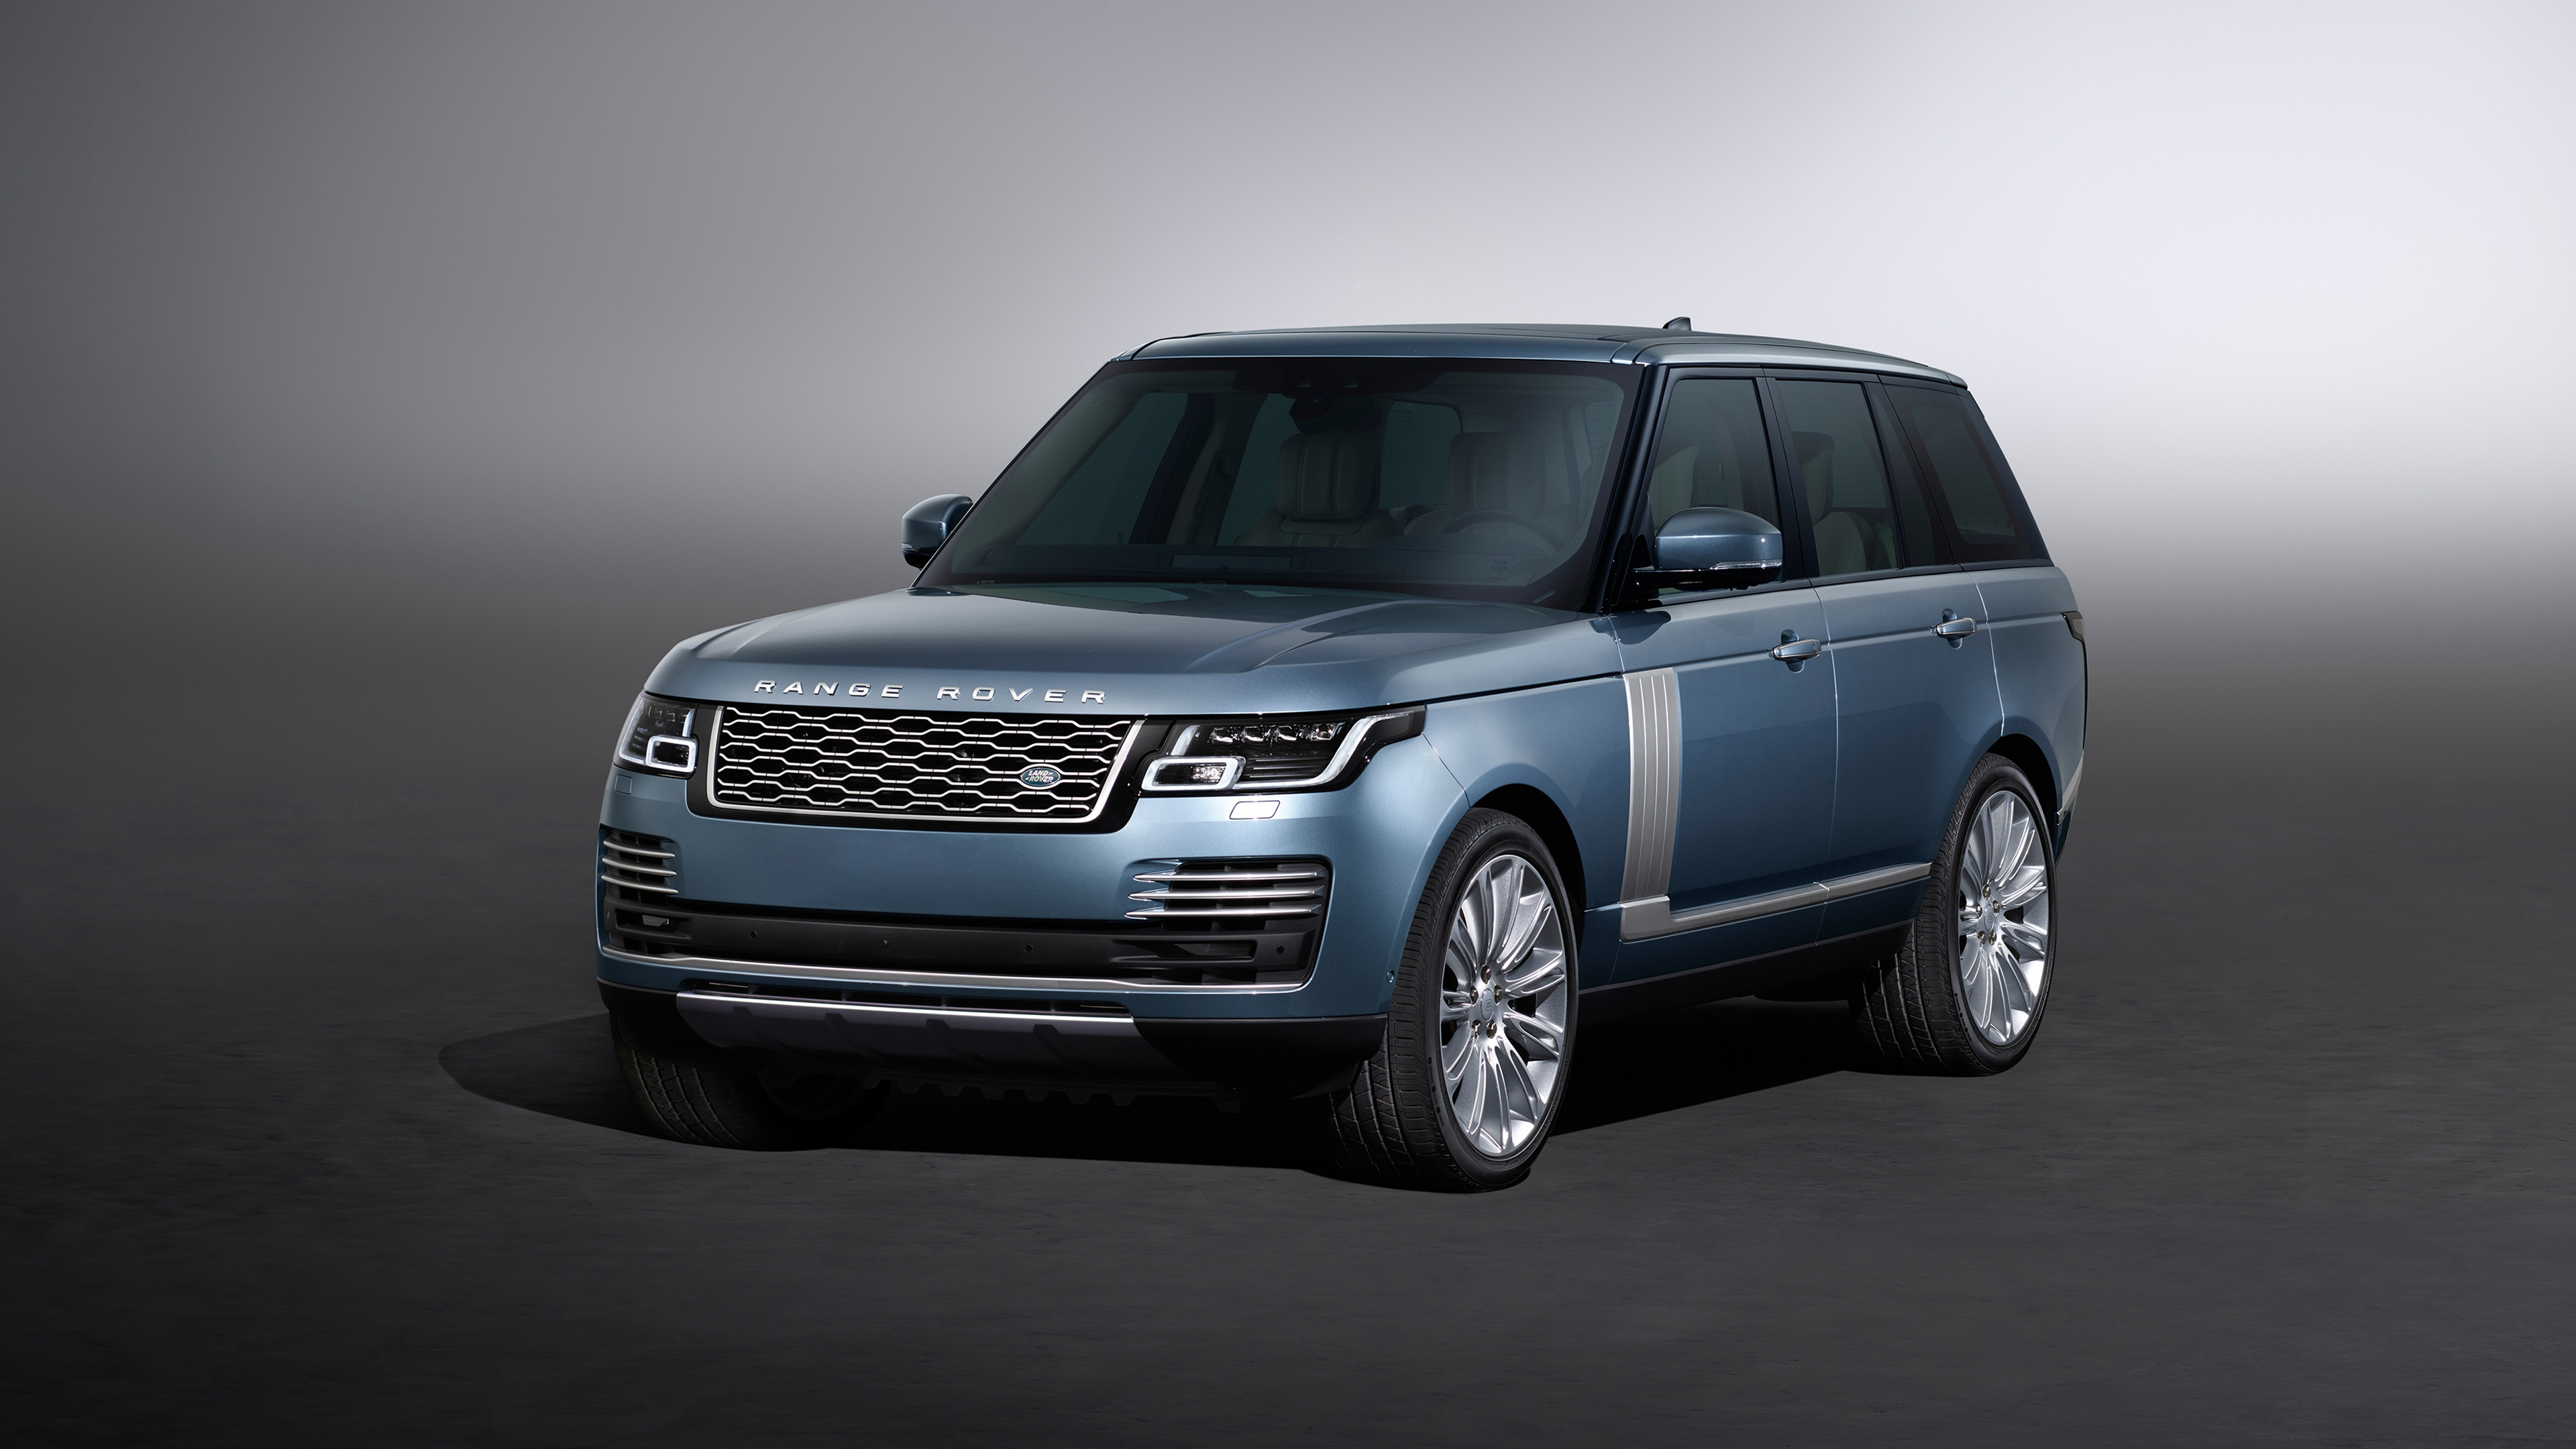 2017 Range Rover Autobiography 4k 2 Wallpaper Hd Car Wallpapers Id 8826